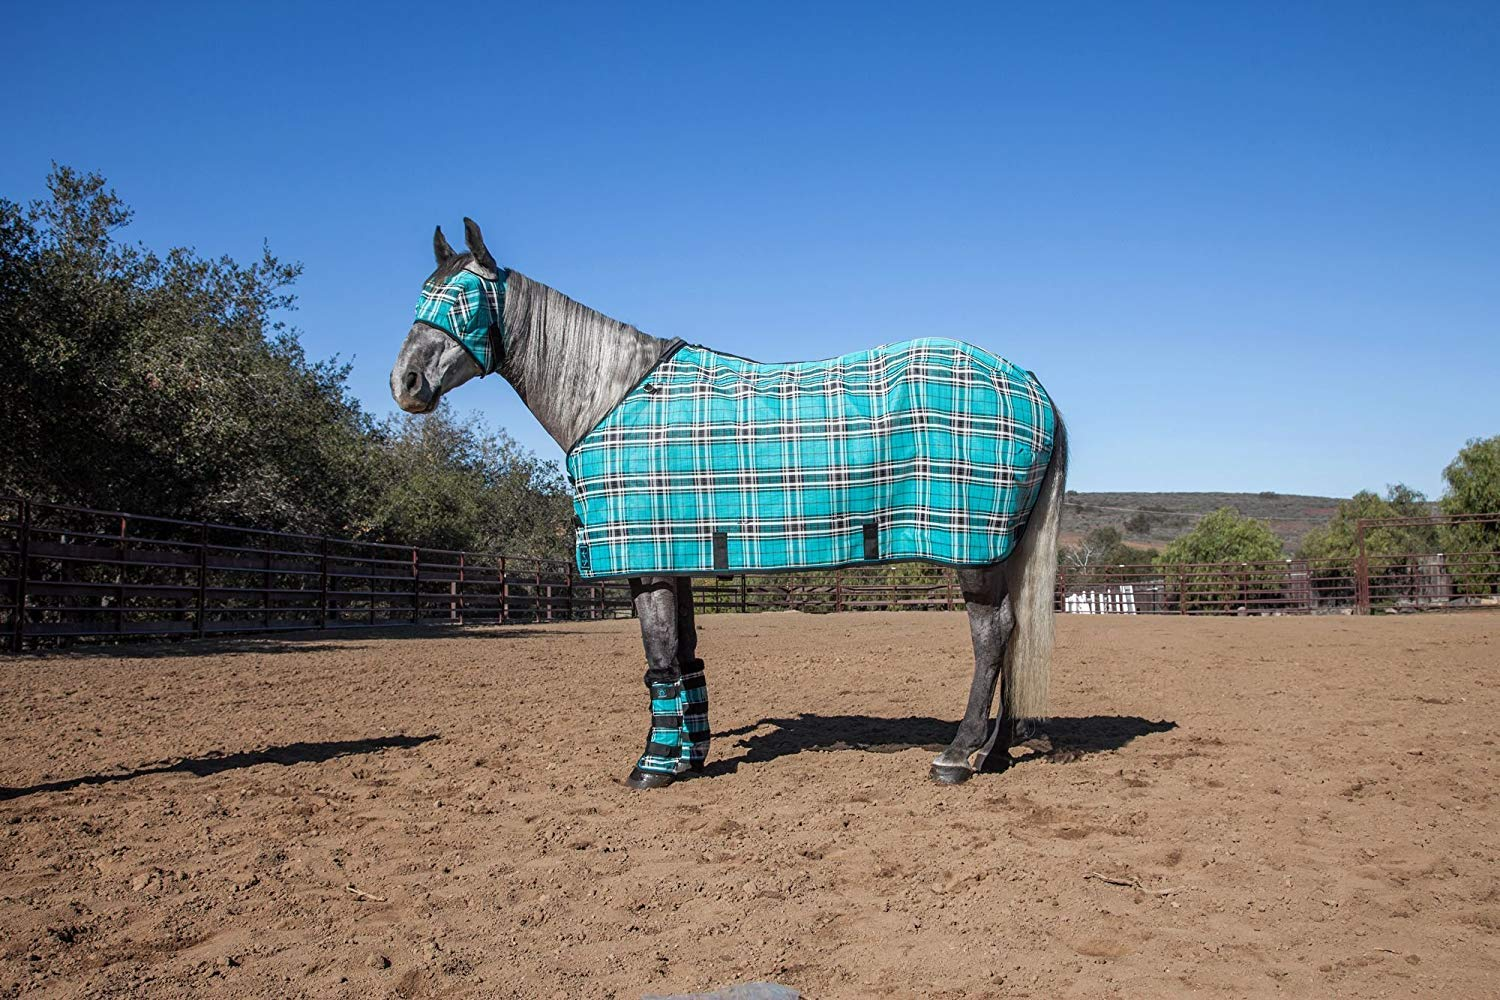 Kensington Pony Protective Fly Sheet - Protection Against UV Rays and Insect Bites- Air Permeable Textilene Mesh Fabric, Black Ice Plaid, Size 54